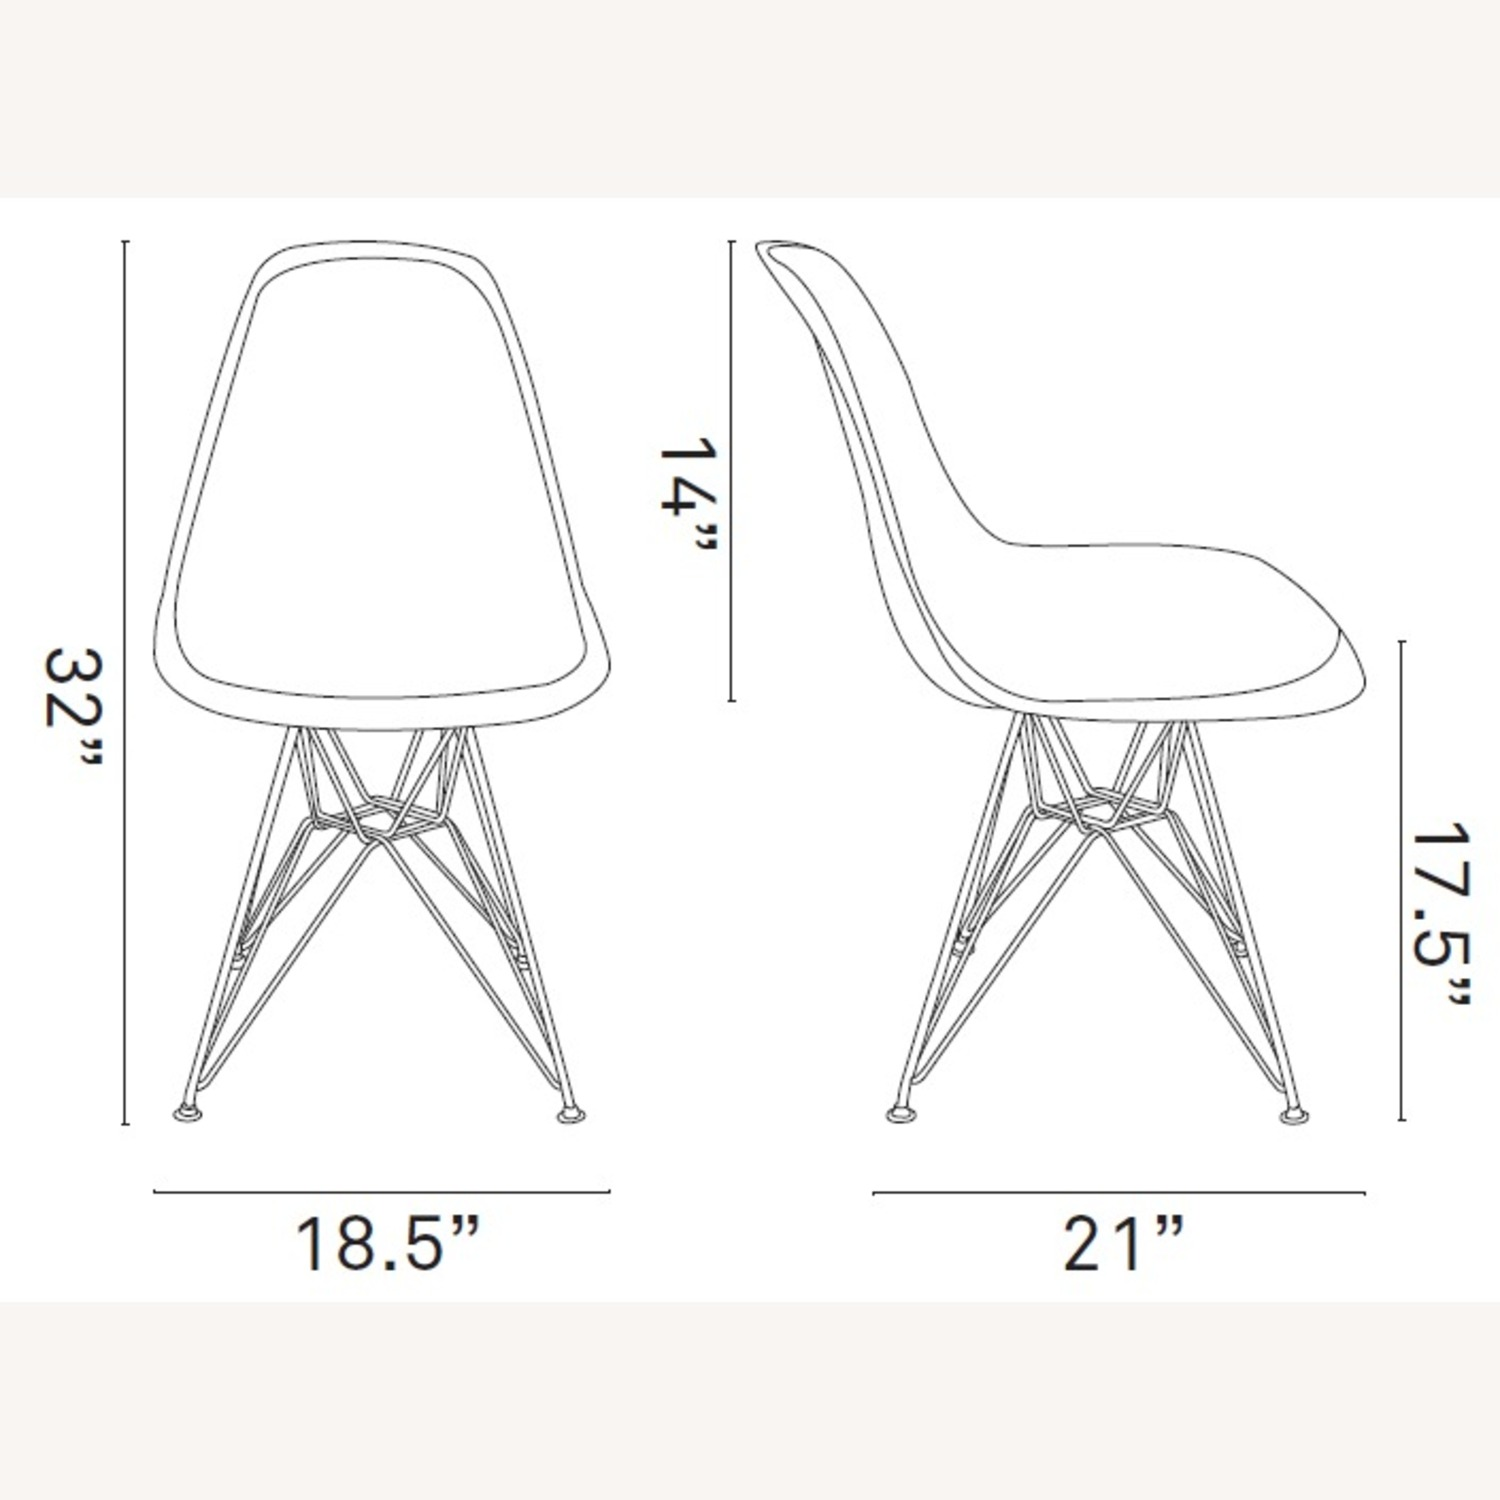 Modern Dining Chair In Clear Finish W/ Wire Legs - image-4